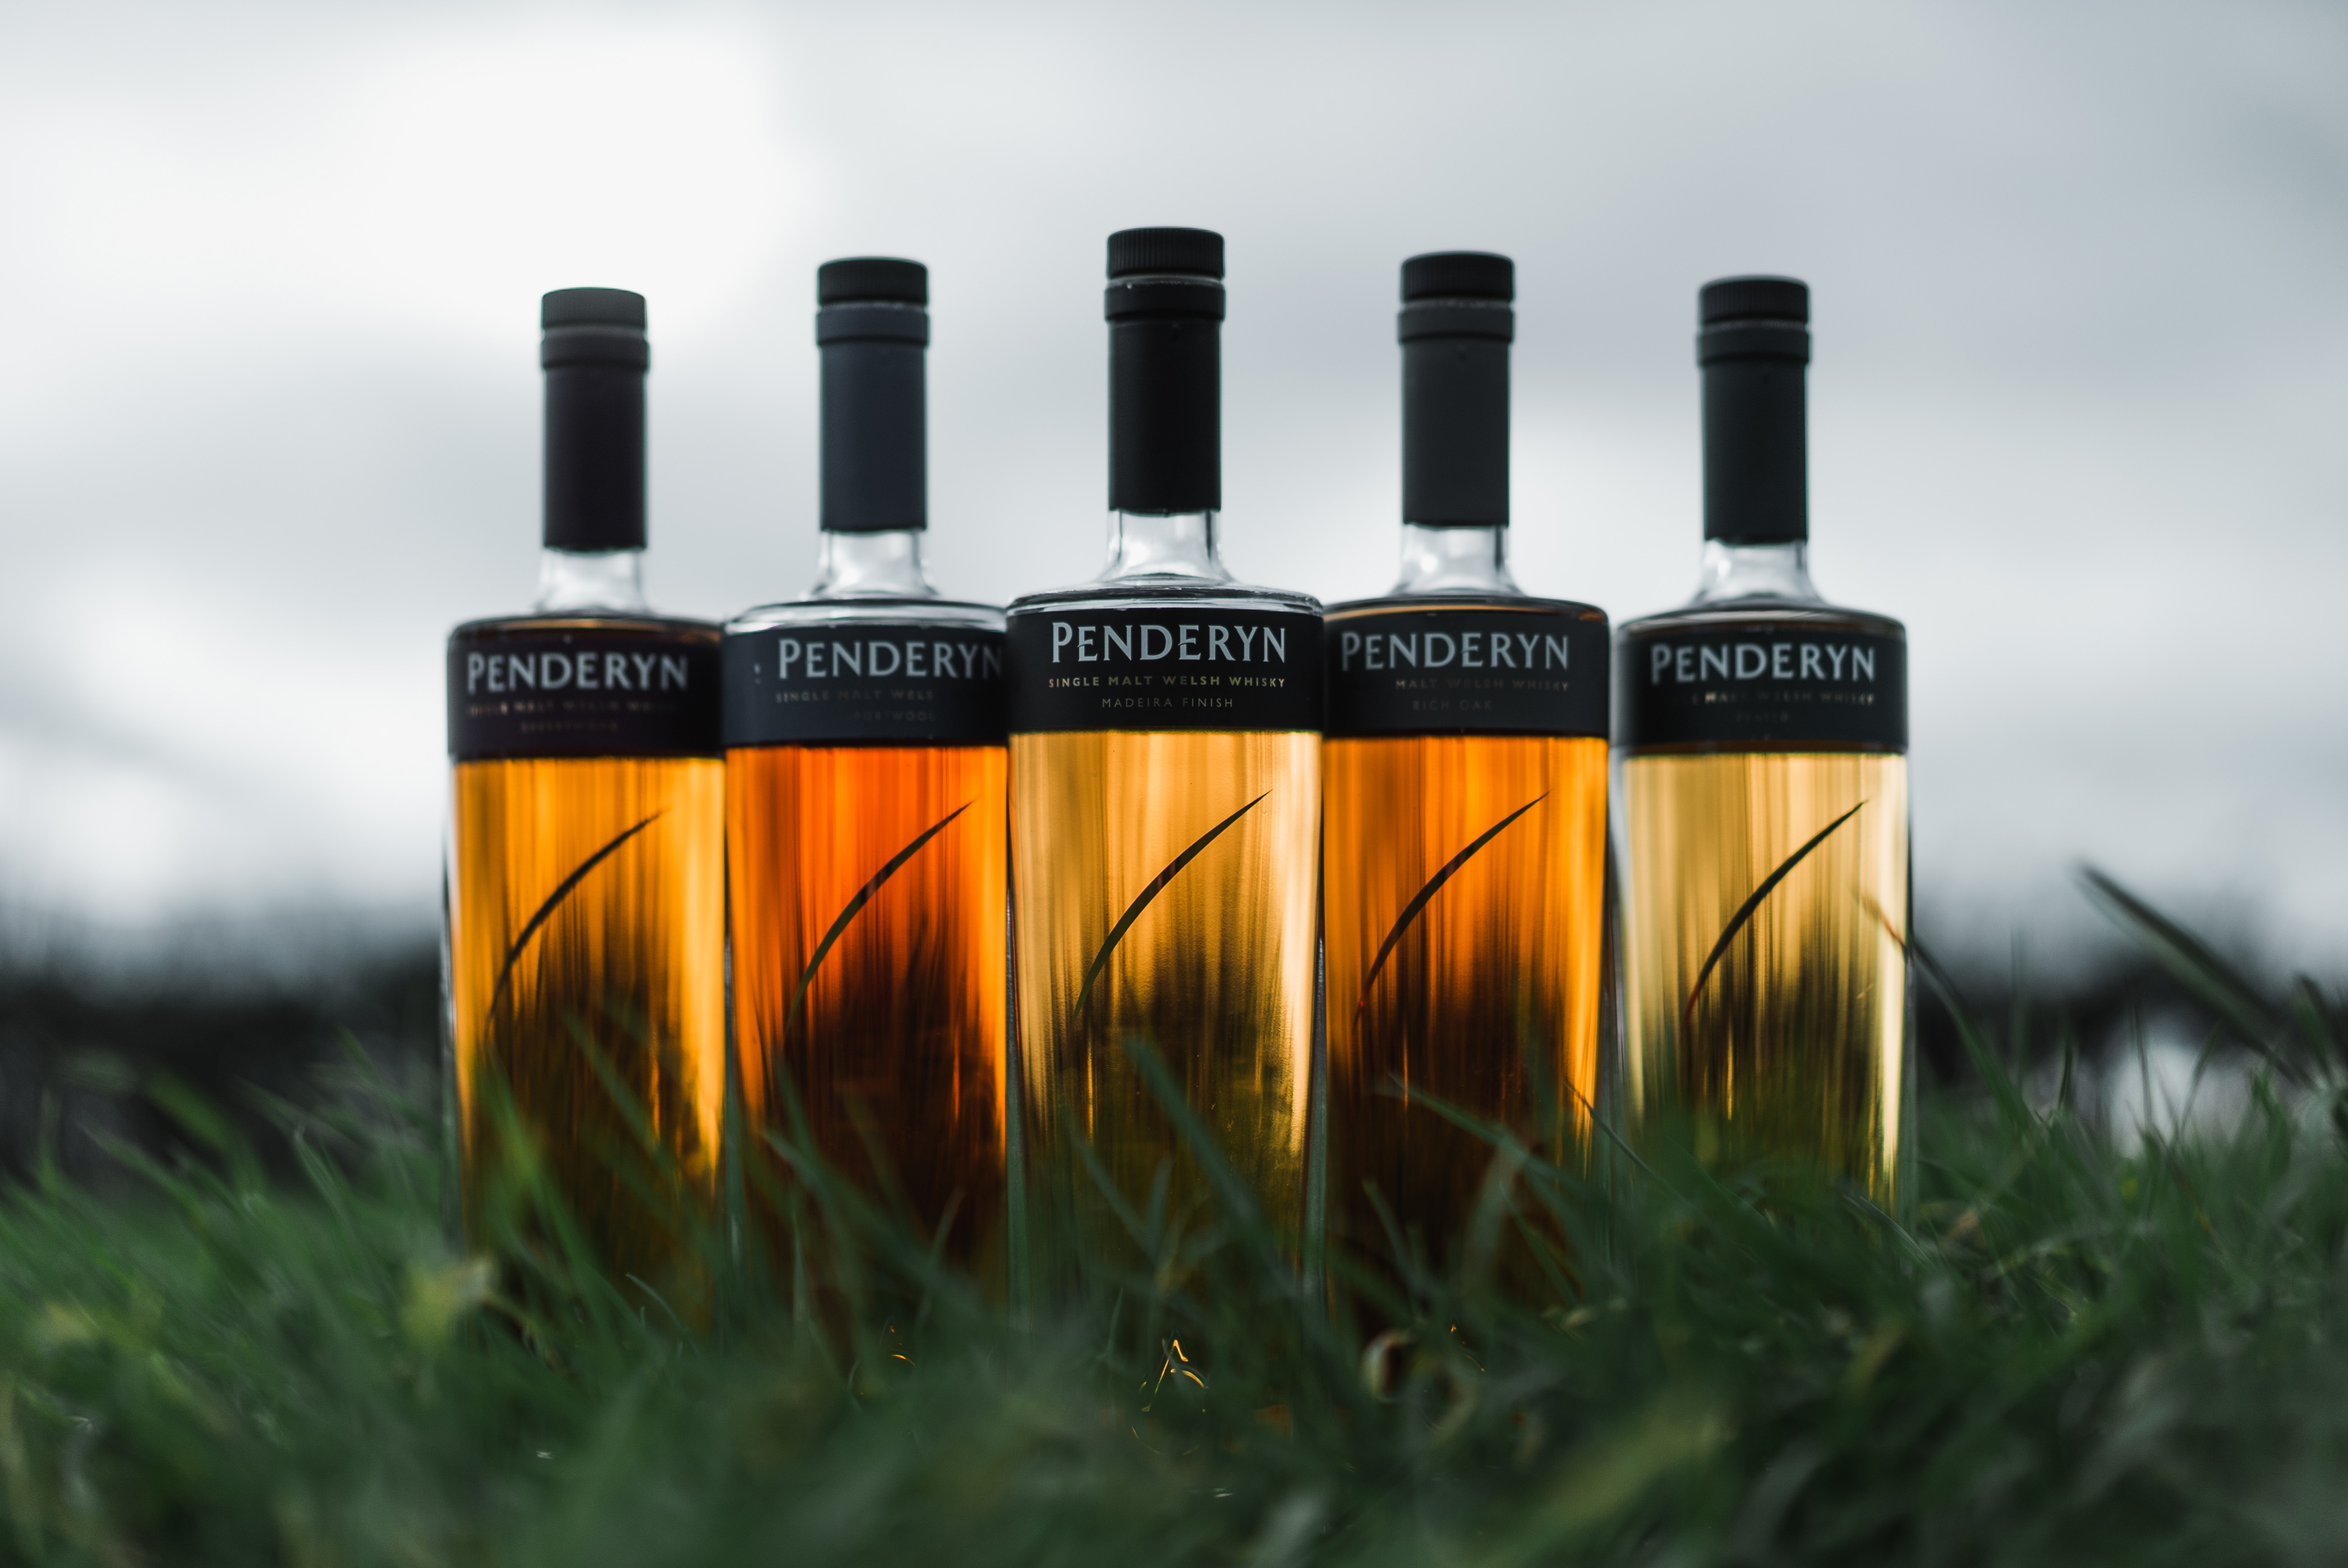 Welsh Whisky Masterclass & Food Pairing